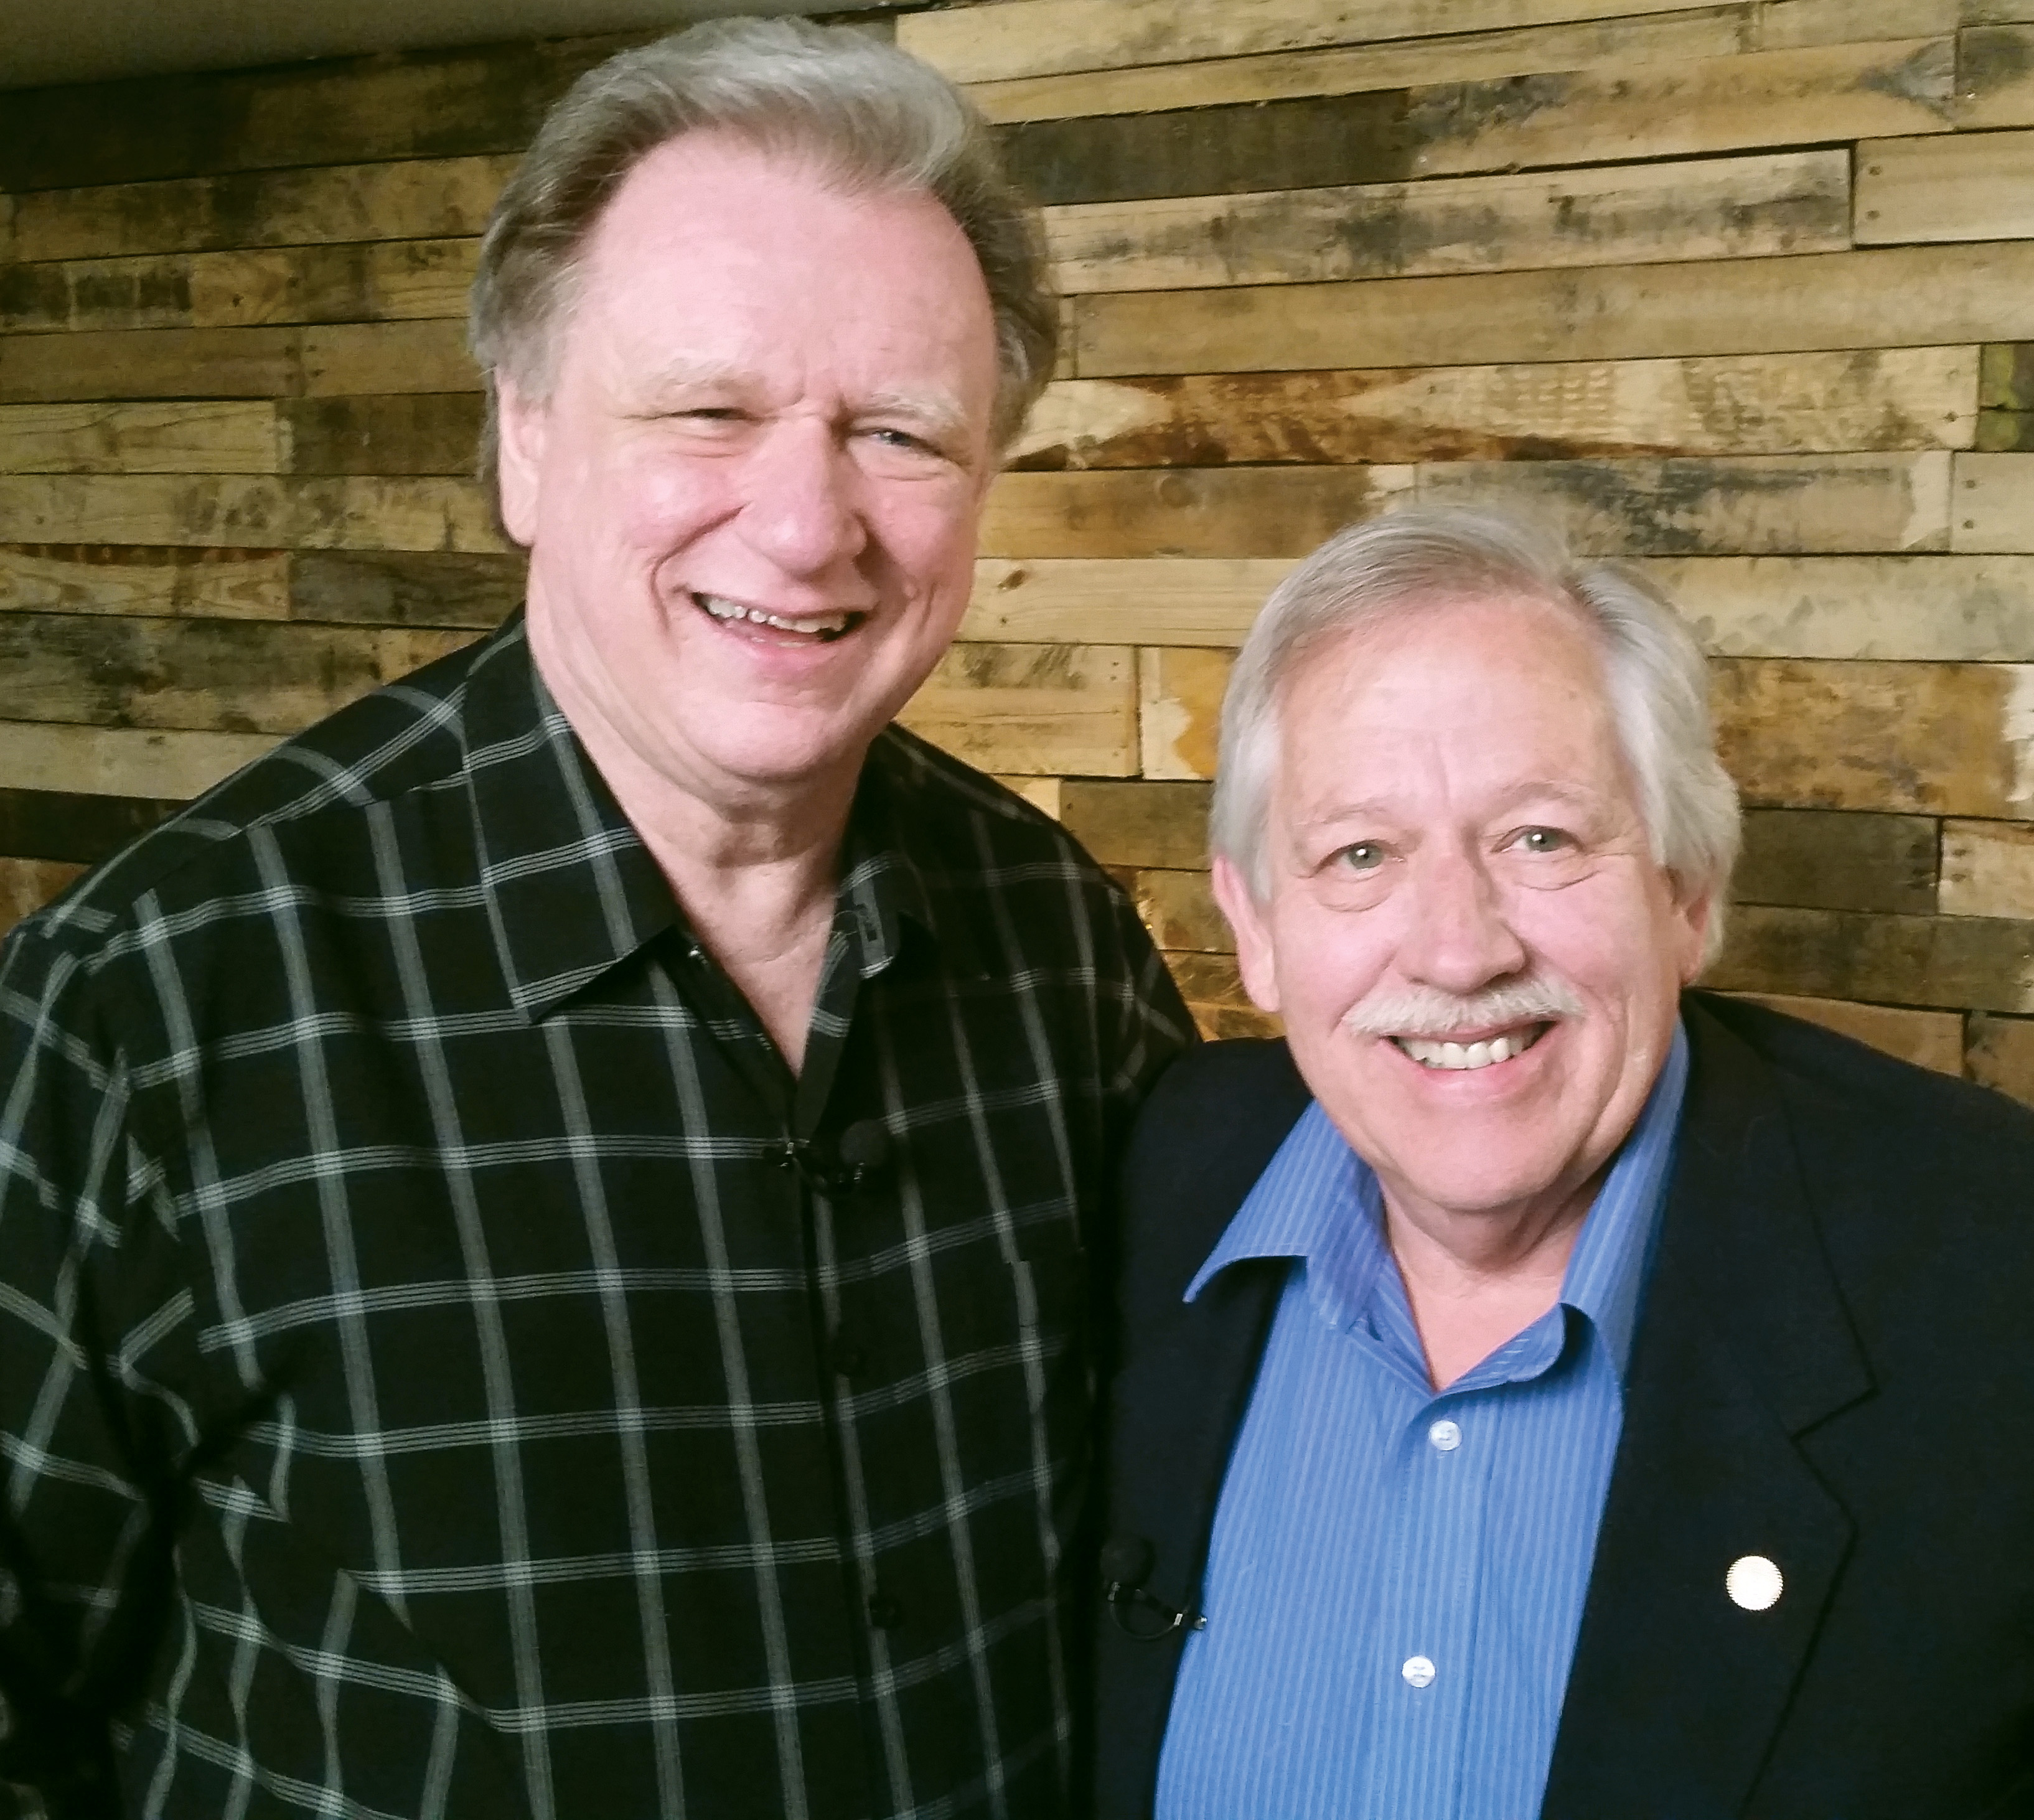 JOHN CONLEE TO APPEAR ON HEARTLAND TV'S ALL-NEW SERIES ...